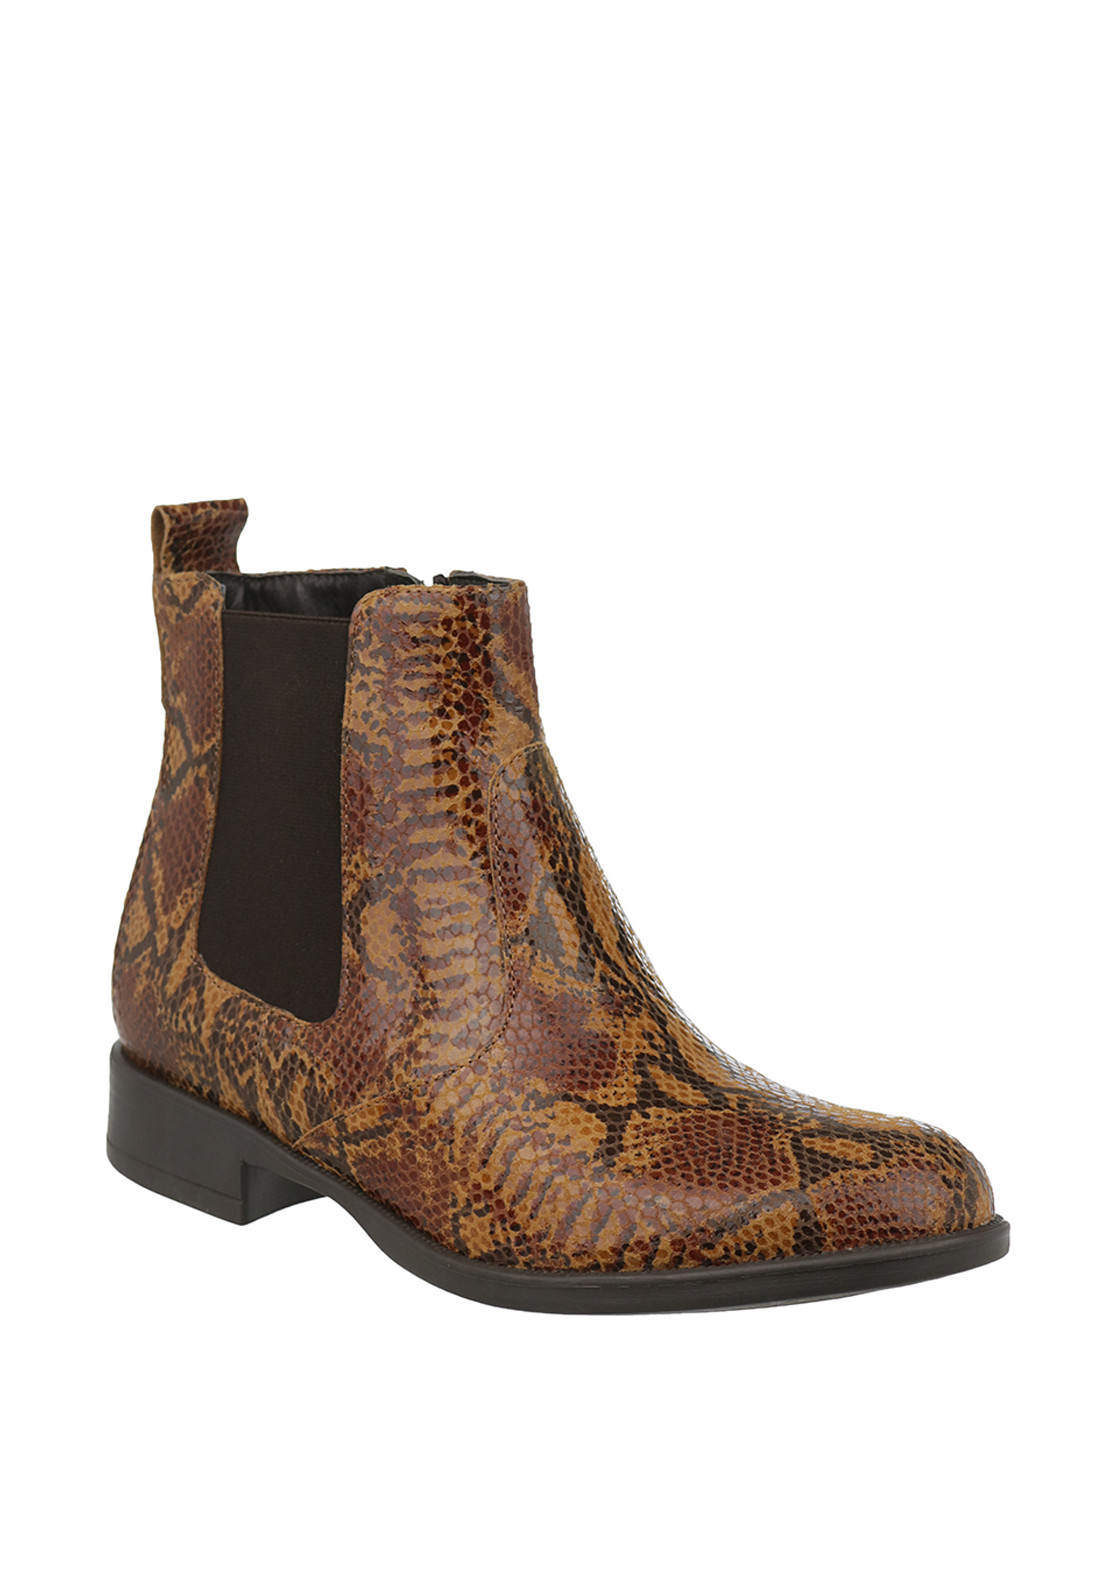 Tamaris Leather Reptile Print Chelsea Ankle Boots, Brown